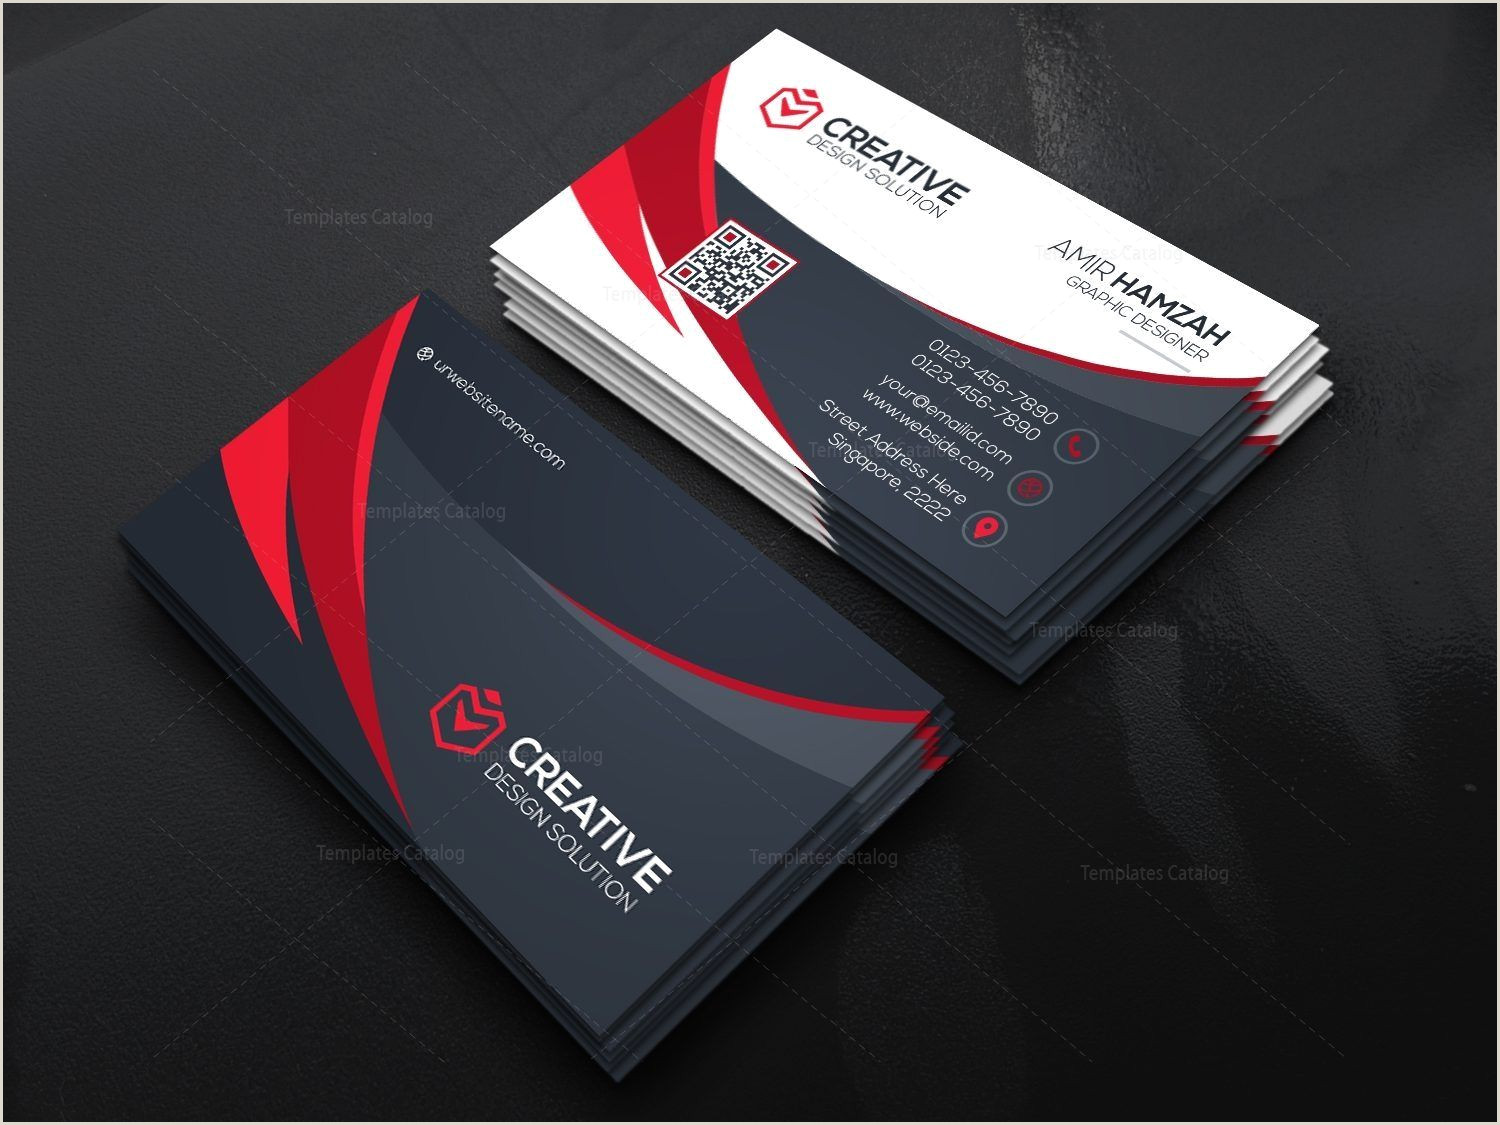 Professional Business Cards Templates Stylish Psd Business Card Templates Graphic Templates